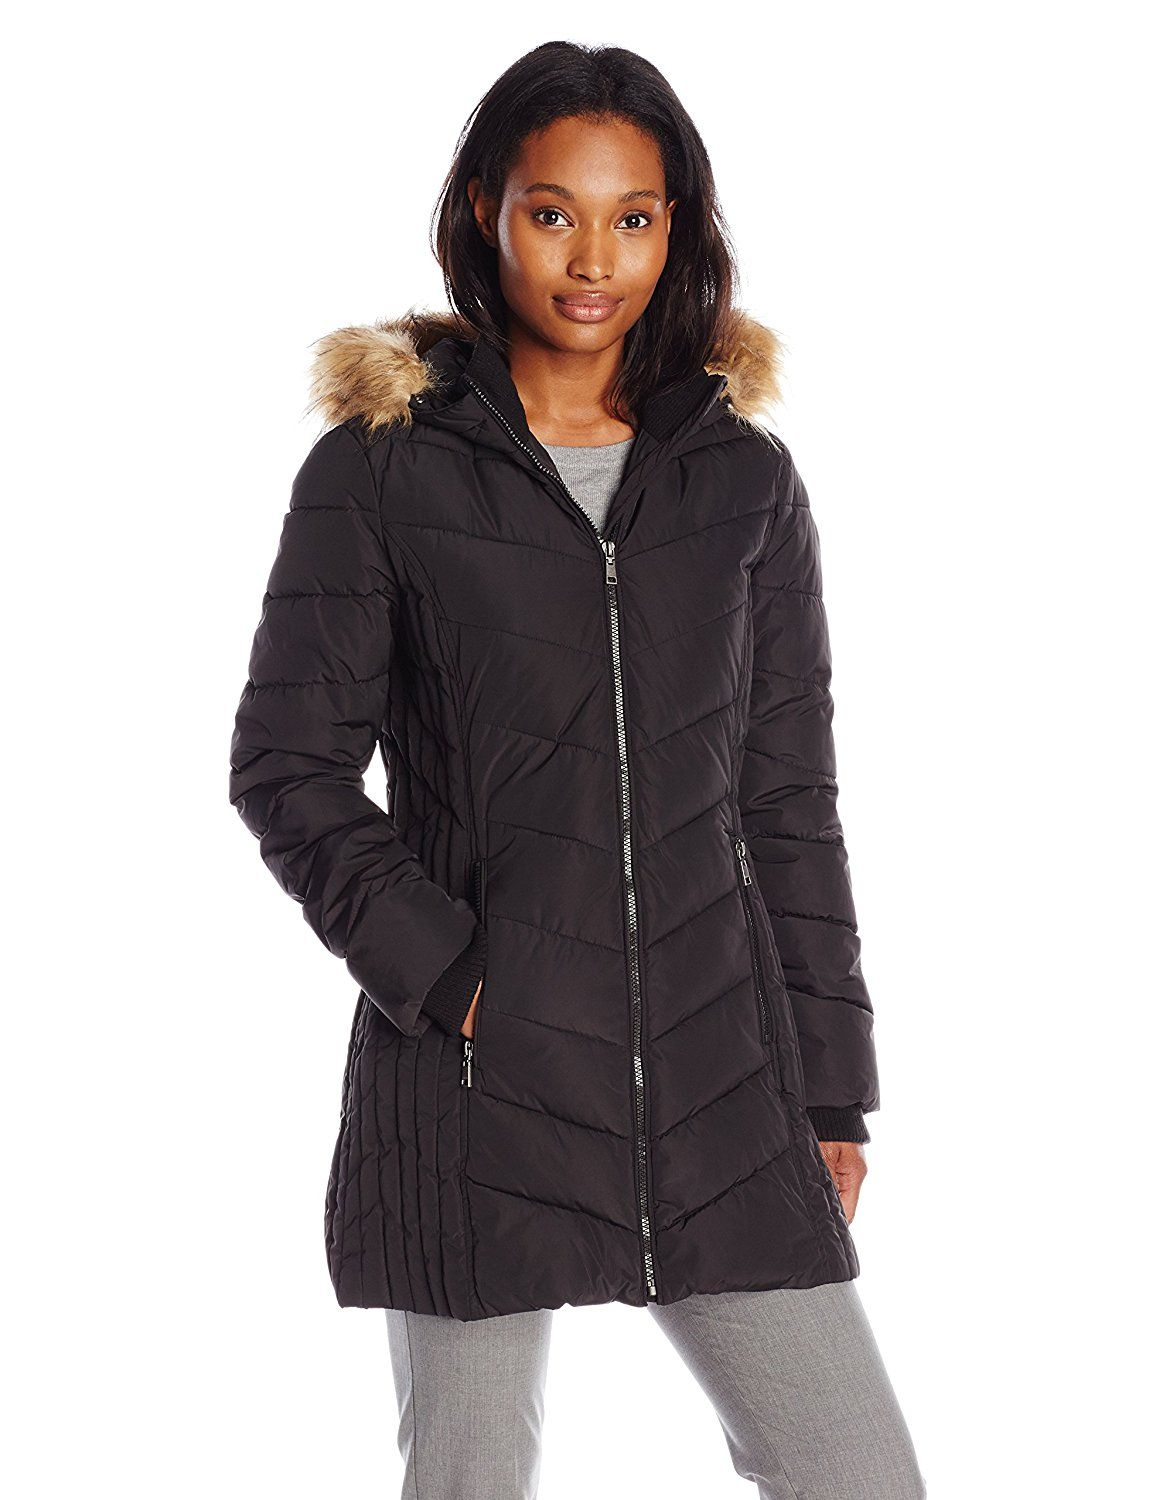 Tommy Hilfiger Women's Classic Chevron Down Coat with Faux